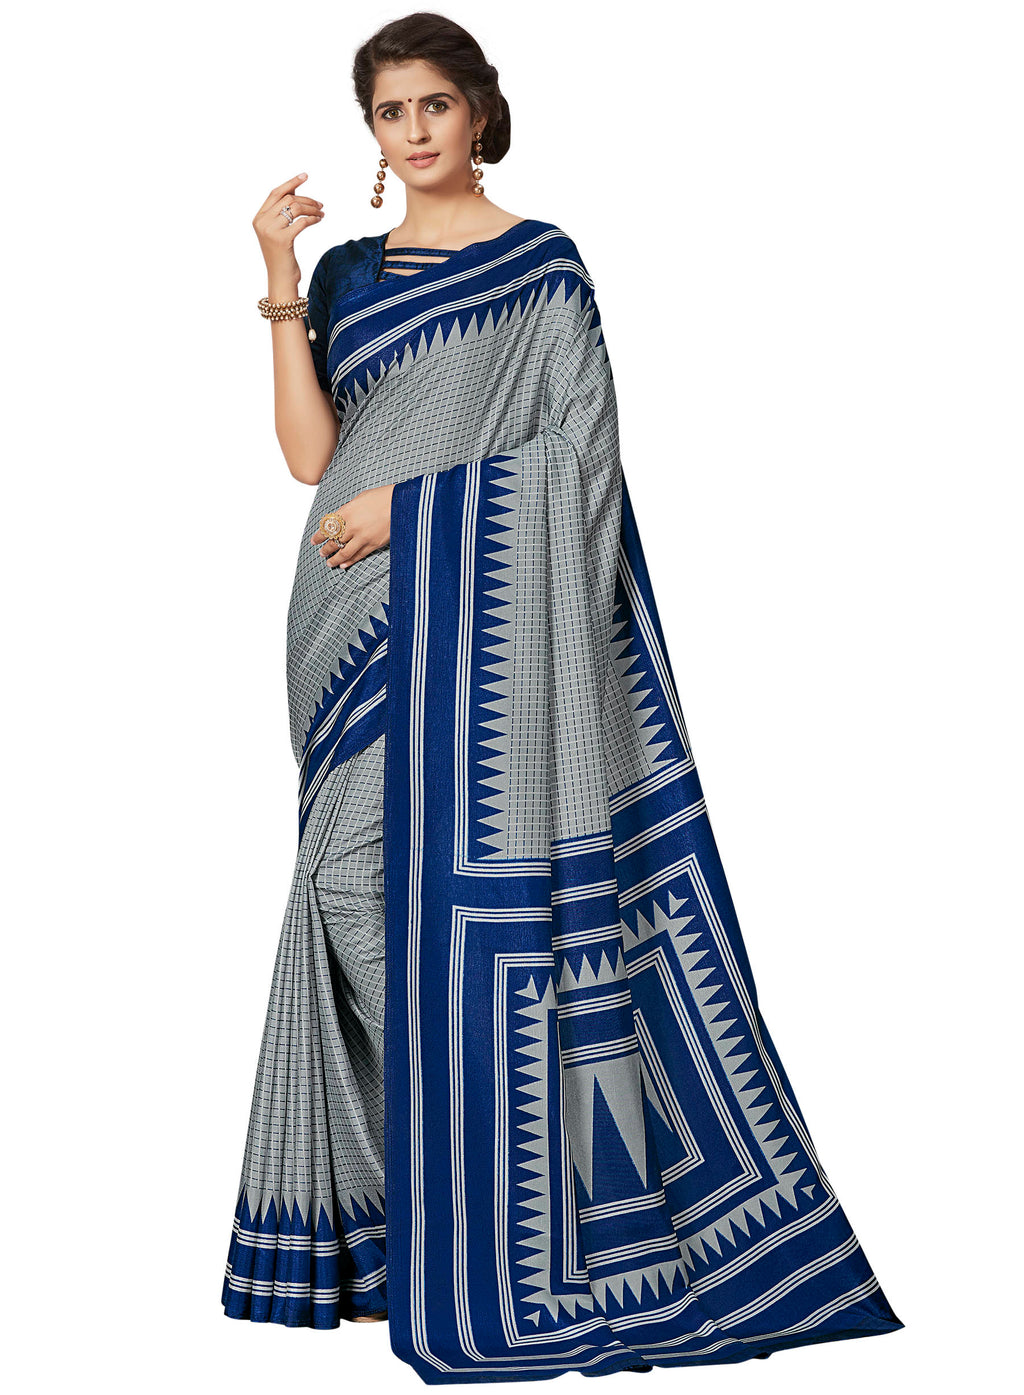 Grey & Blue Color Crepe Printed Office Wear Sarees NYF-7683